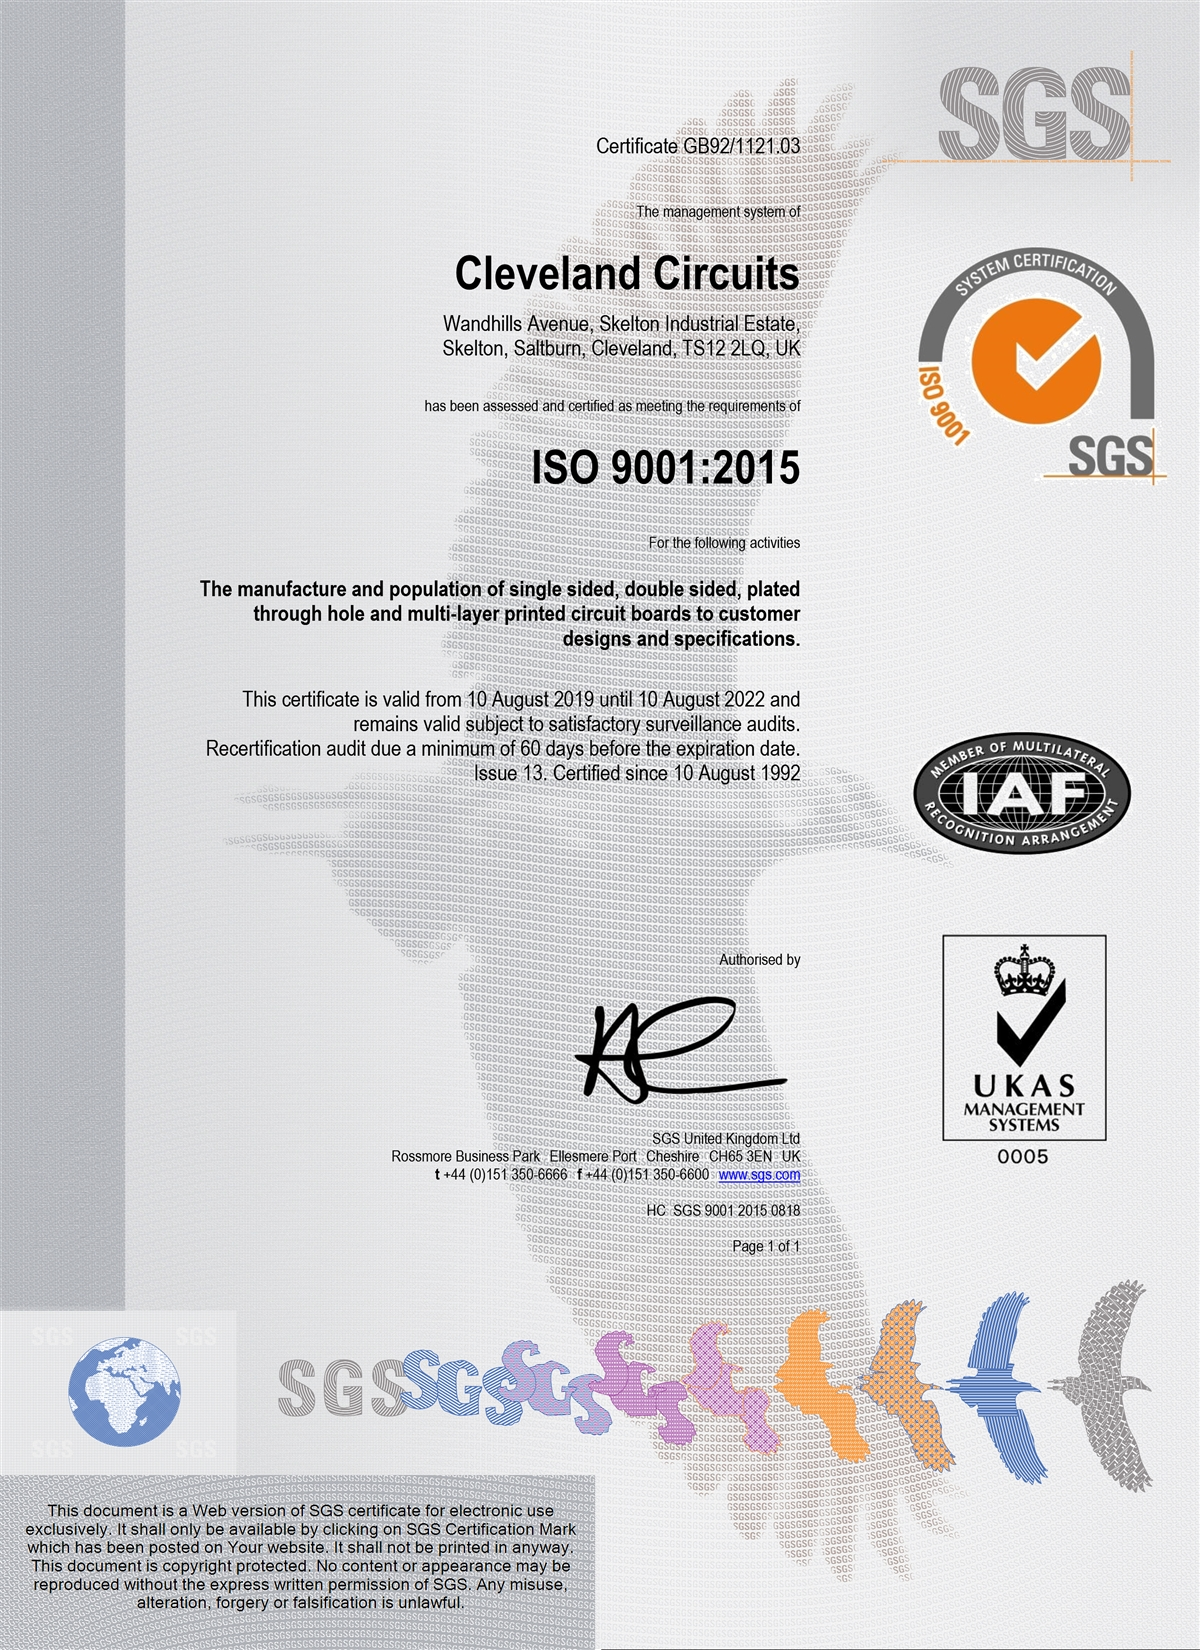 Cleveland Circuits ISO9001/2015 certificate